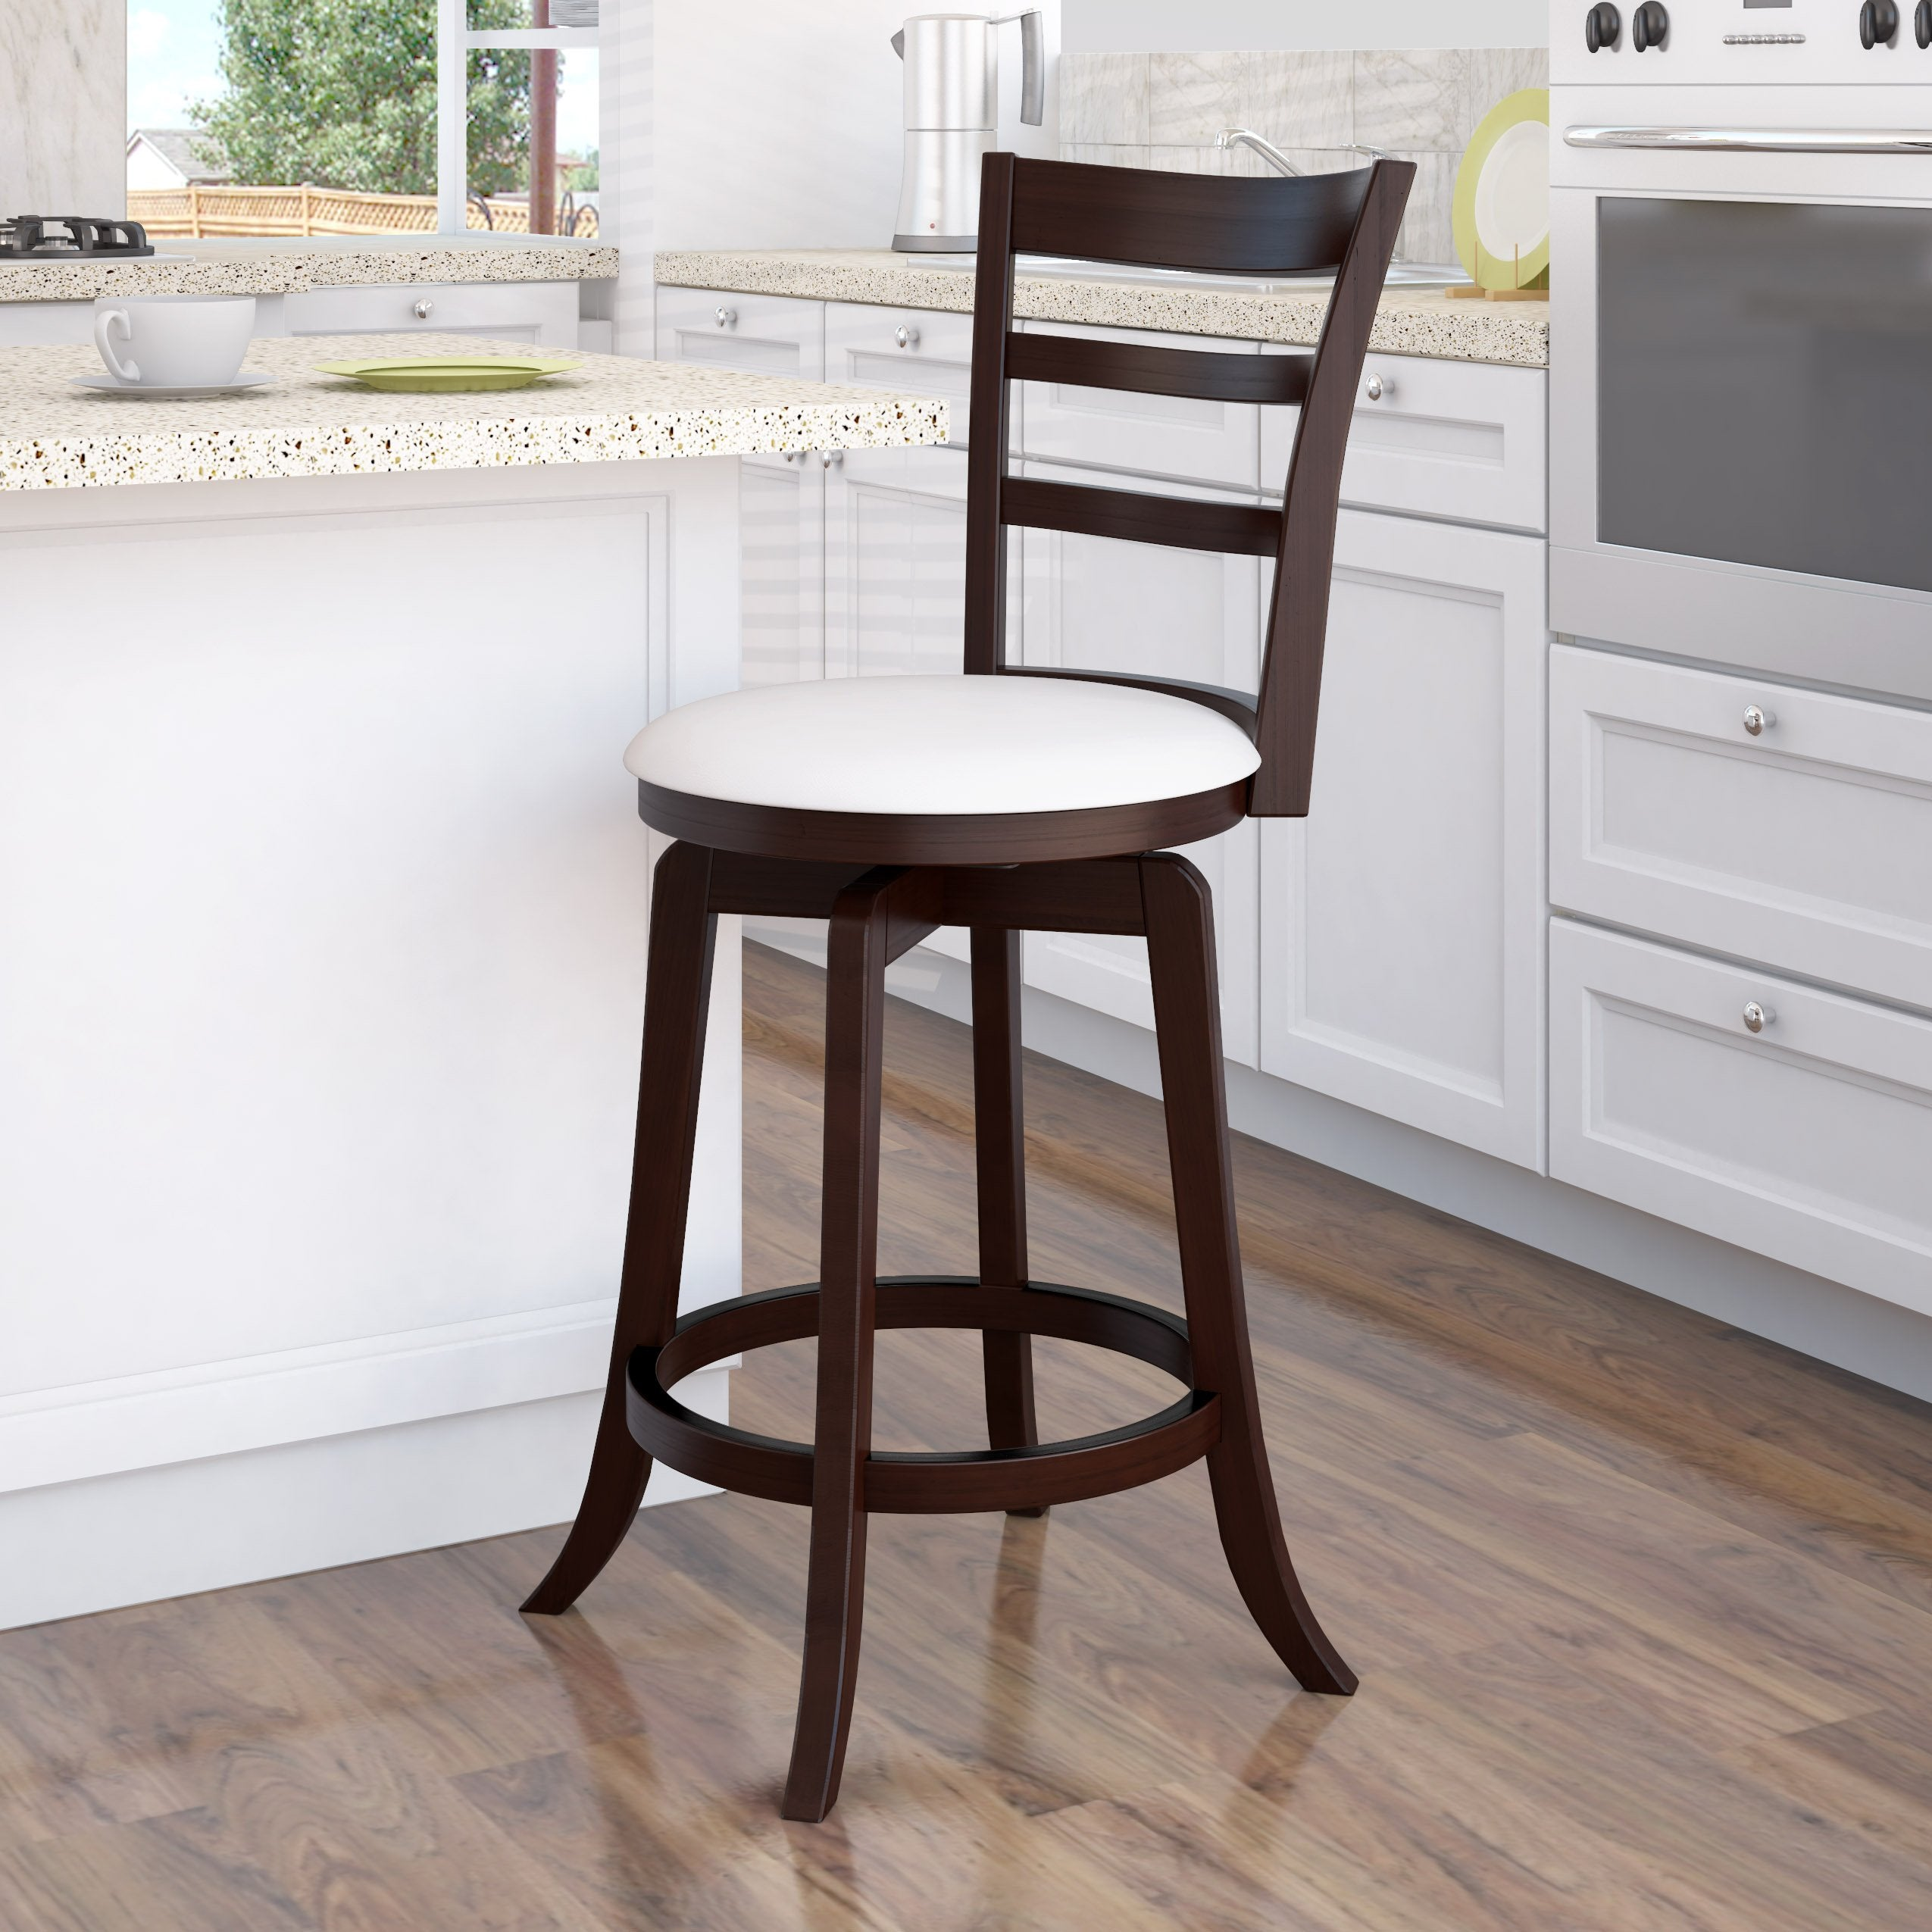 Magnificent Wood Counter Height Bar Stool With White Leatherette Seat And 3 Slat Backrest Lamtechconsult Wood Chair Design Ideas Lamtechconsultcom